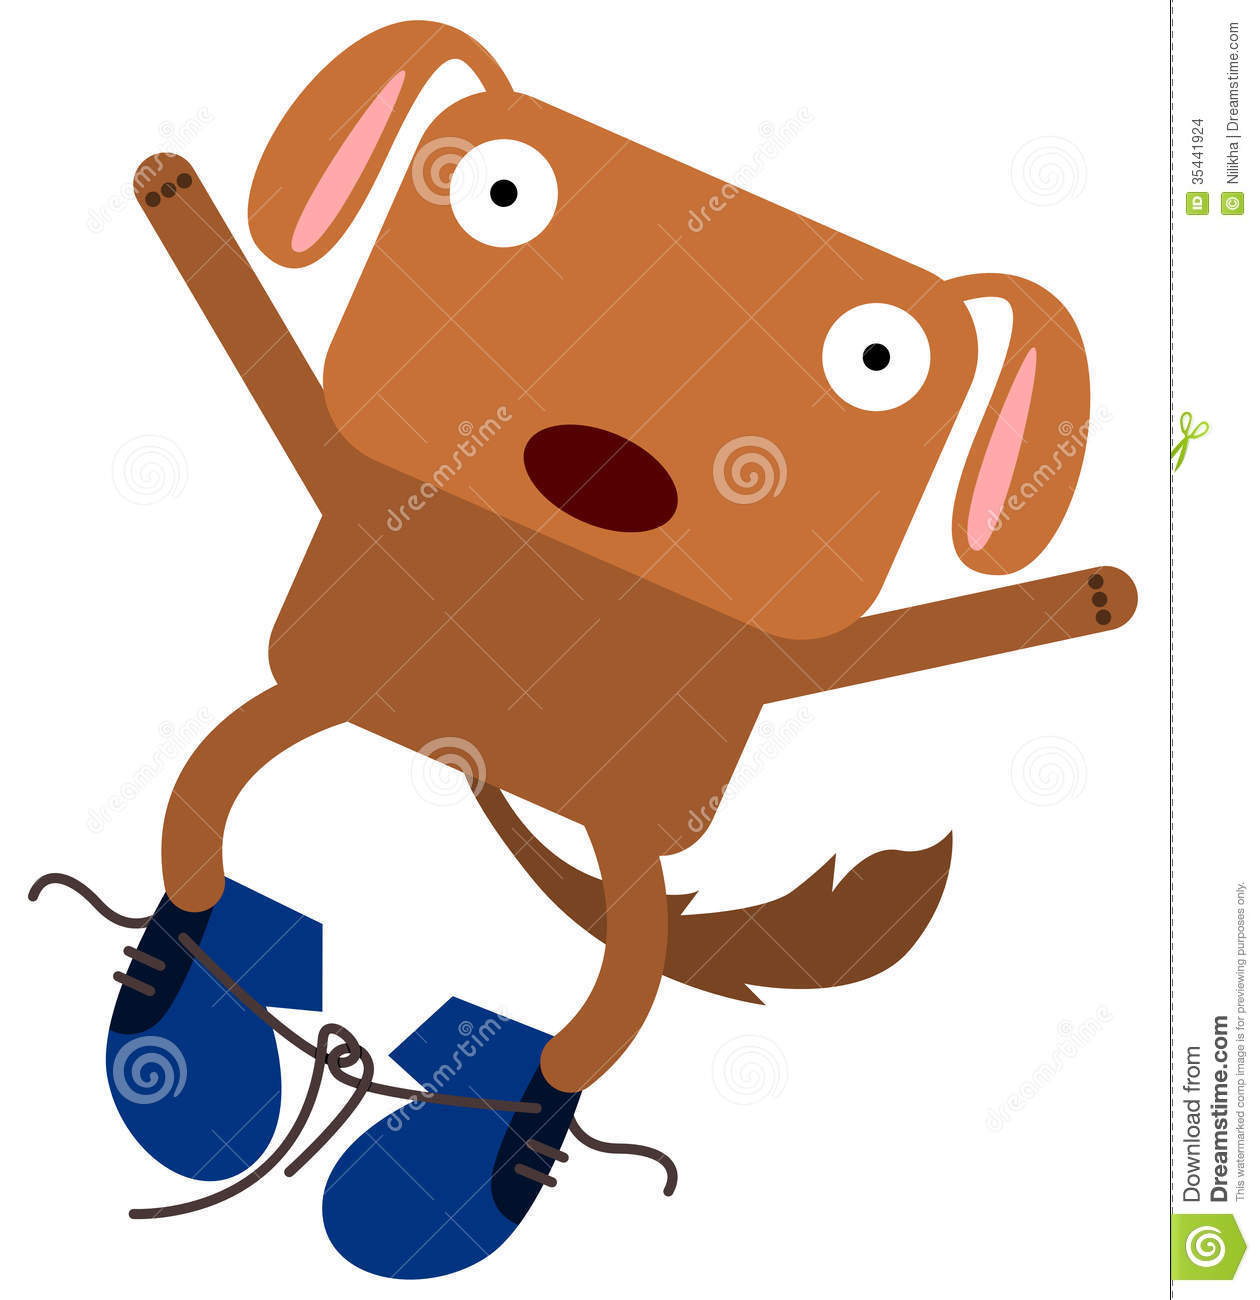 Stock Images Dog S Shoe Tripping Untied Image35441924 on cartoon people tripping